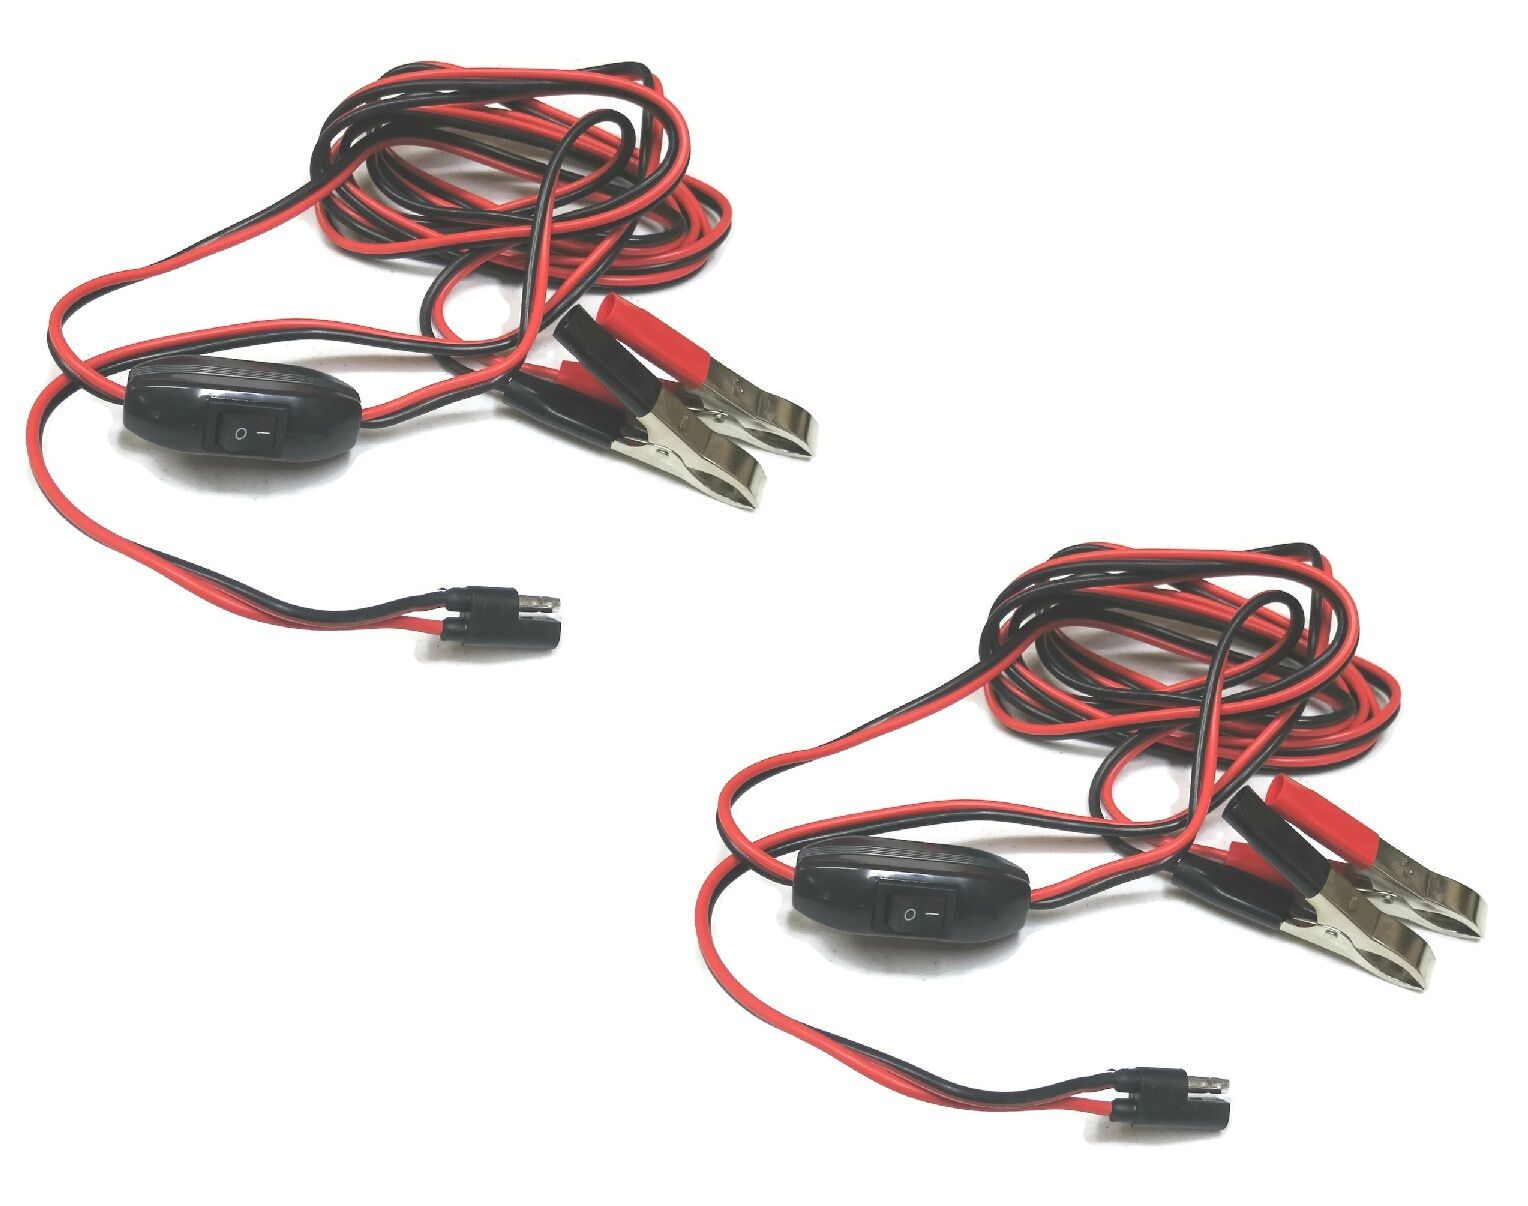 WIRE POWER HARNESS / CABLES w/ Alligator Clamps Lawn / Yard Sprayers